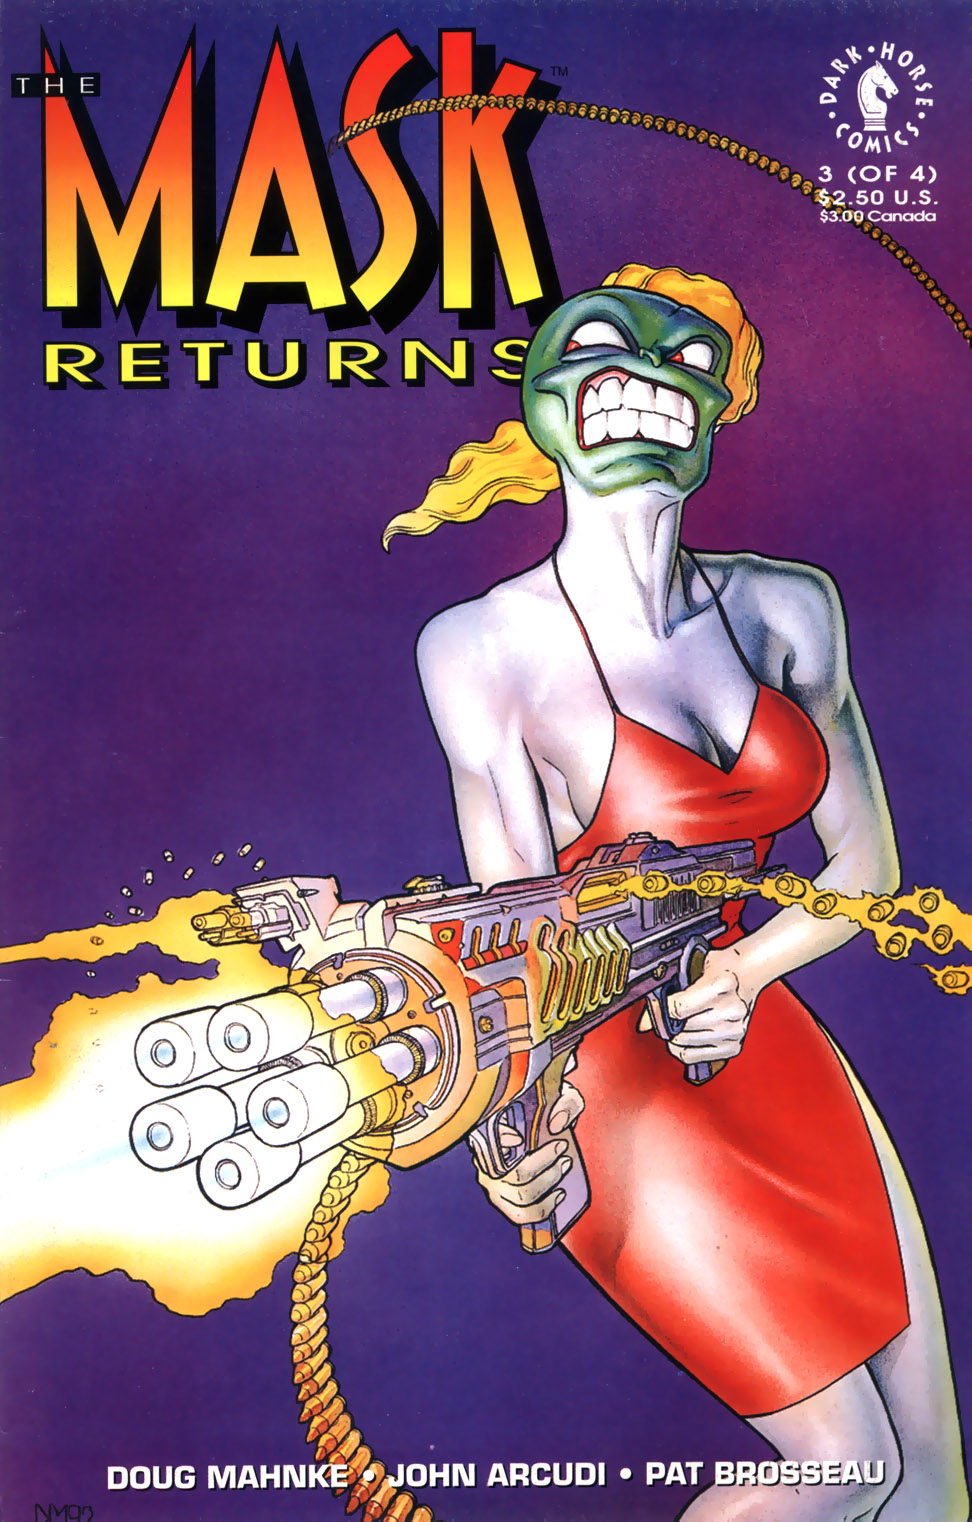 The Mask Returns Issue 3